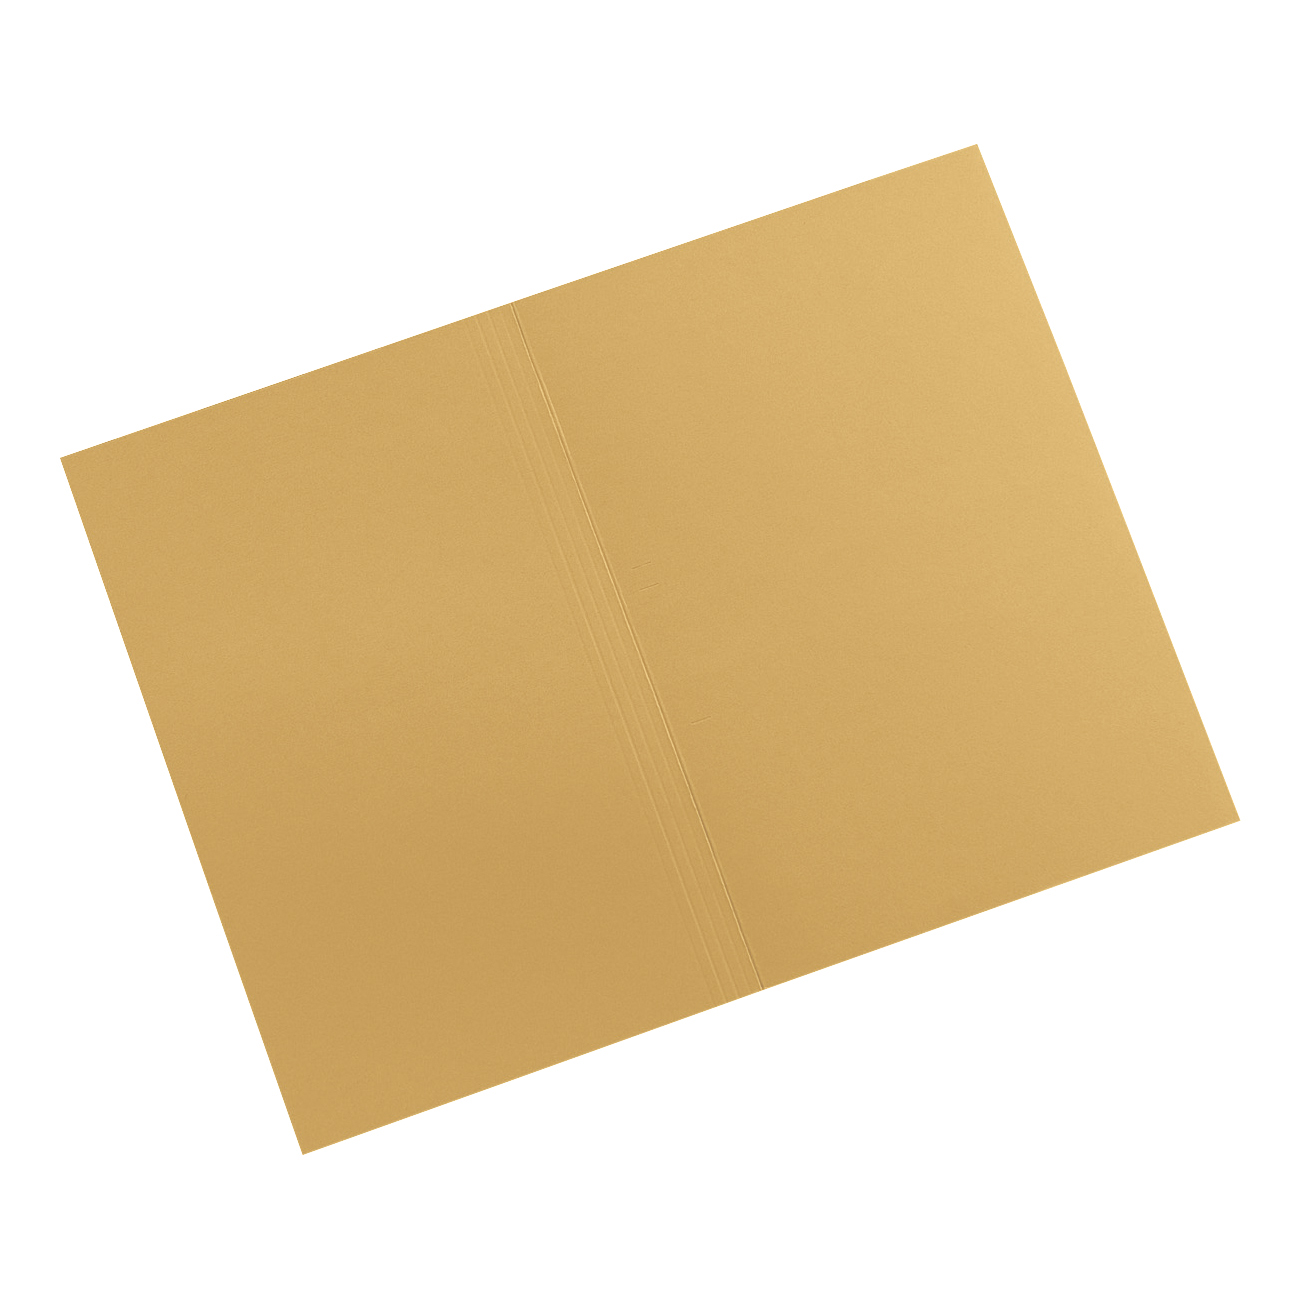 Square Cut Folders 5 Star Elite Square Cut Folders 315gsm Heavyweight Manilla Foolscap Yellow Pack 100